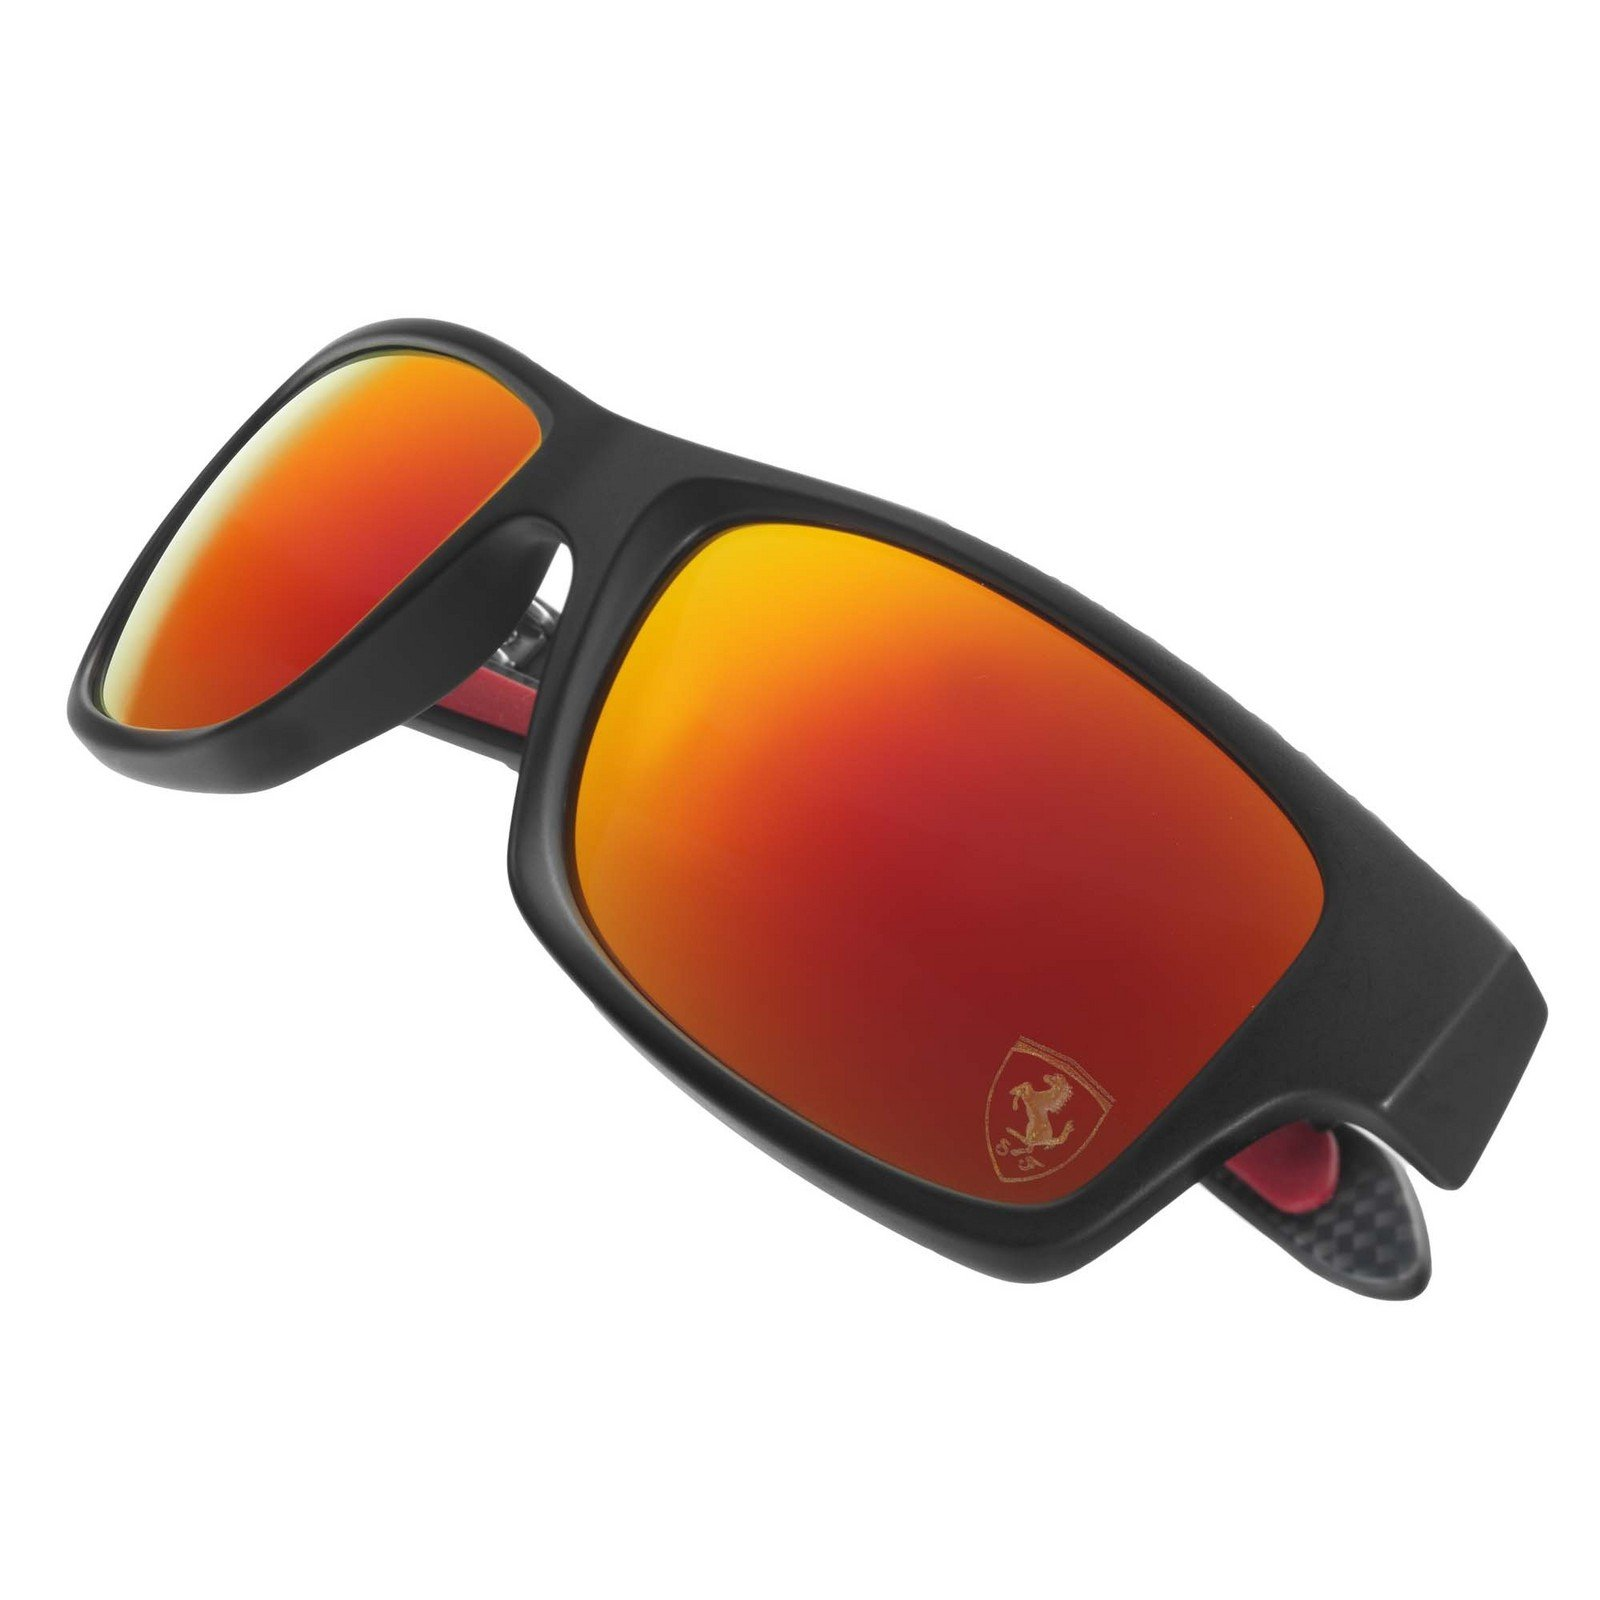 0f1b6e7c83 uk oakley sunglasses inmate numbers orange 23fab 1c477